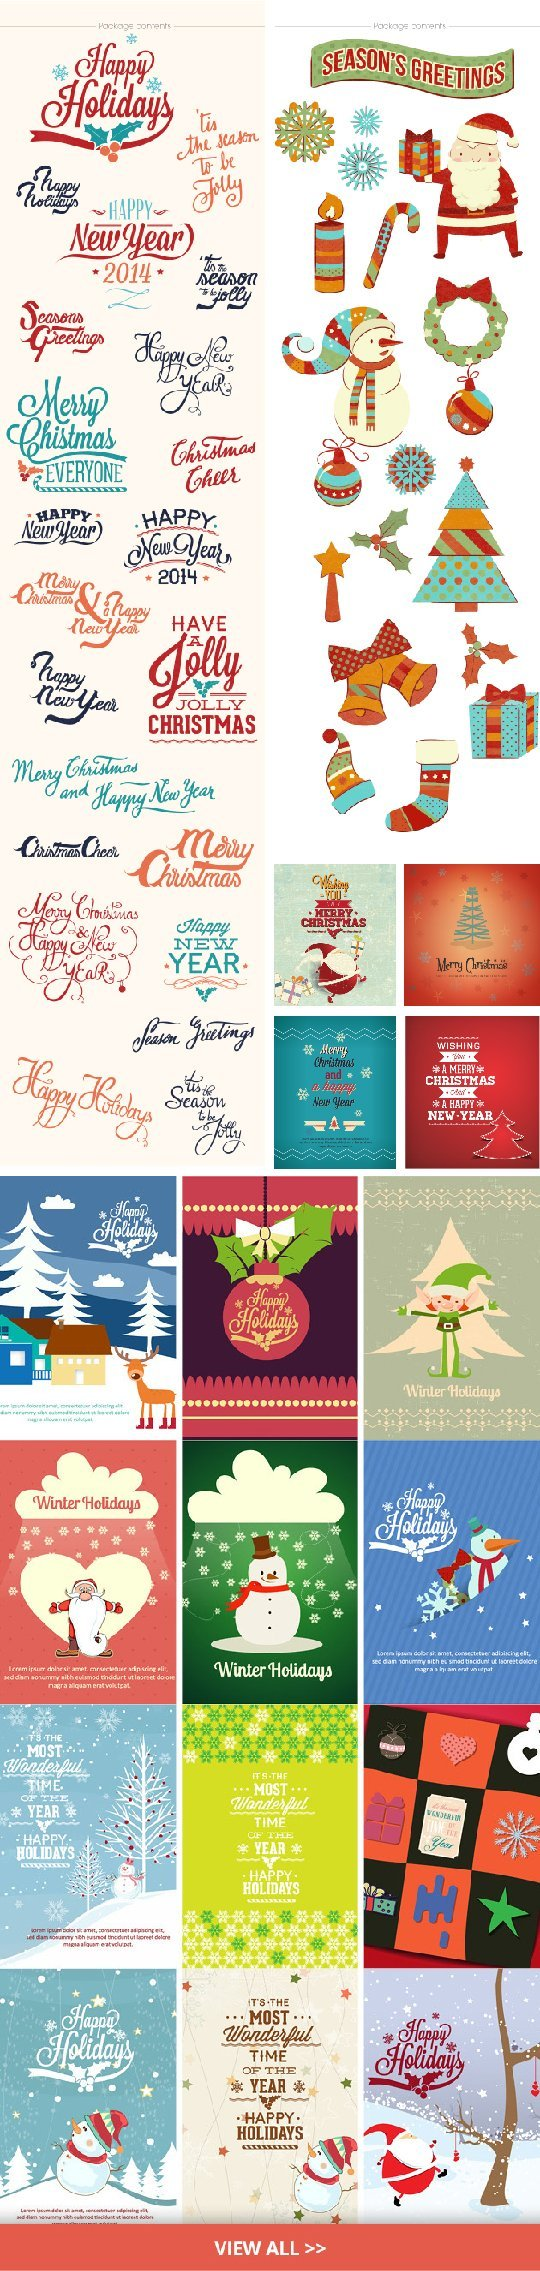 Christmas and winter designer resources